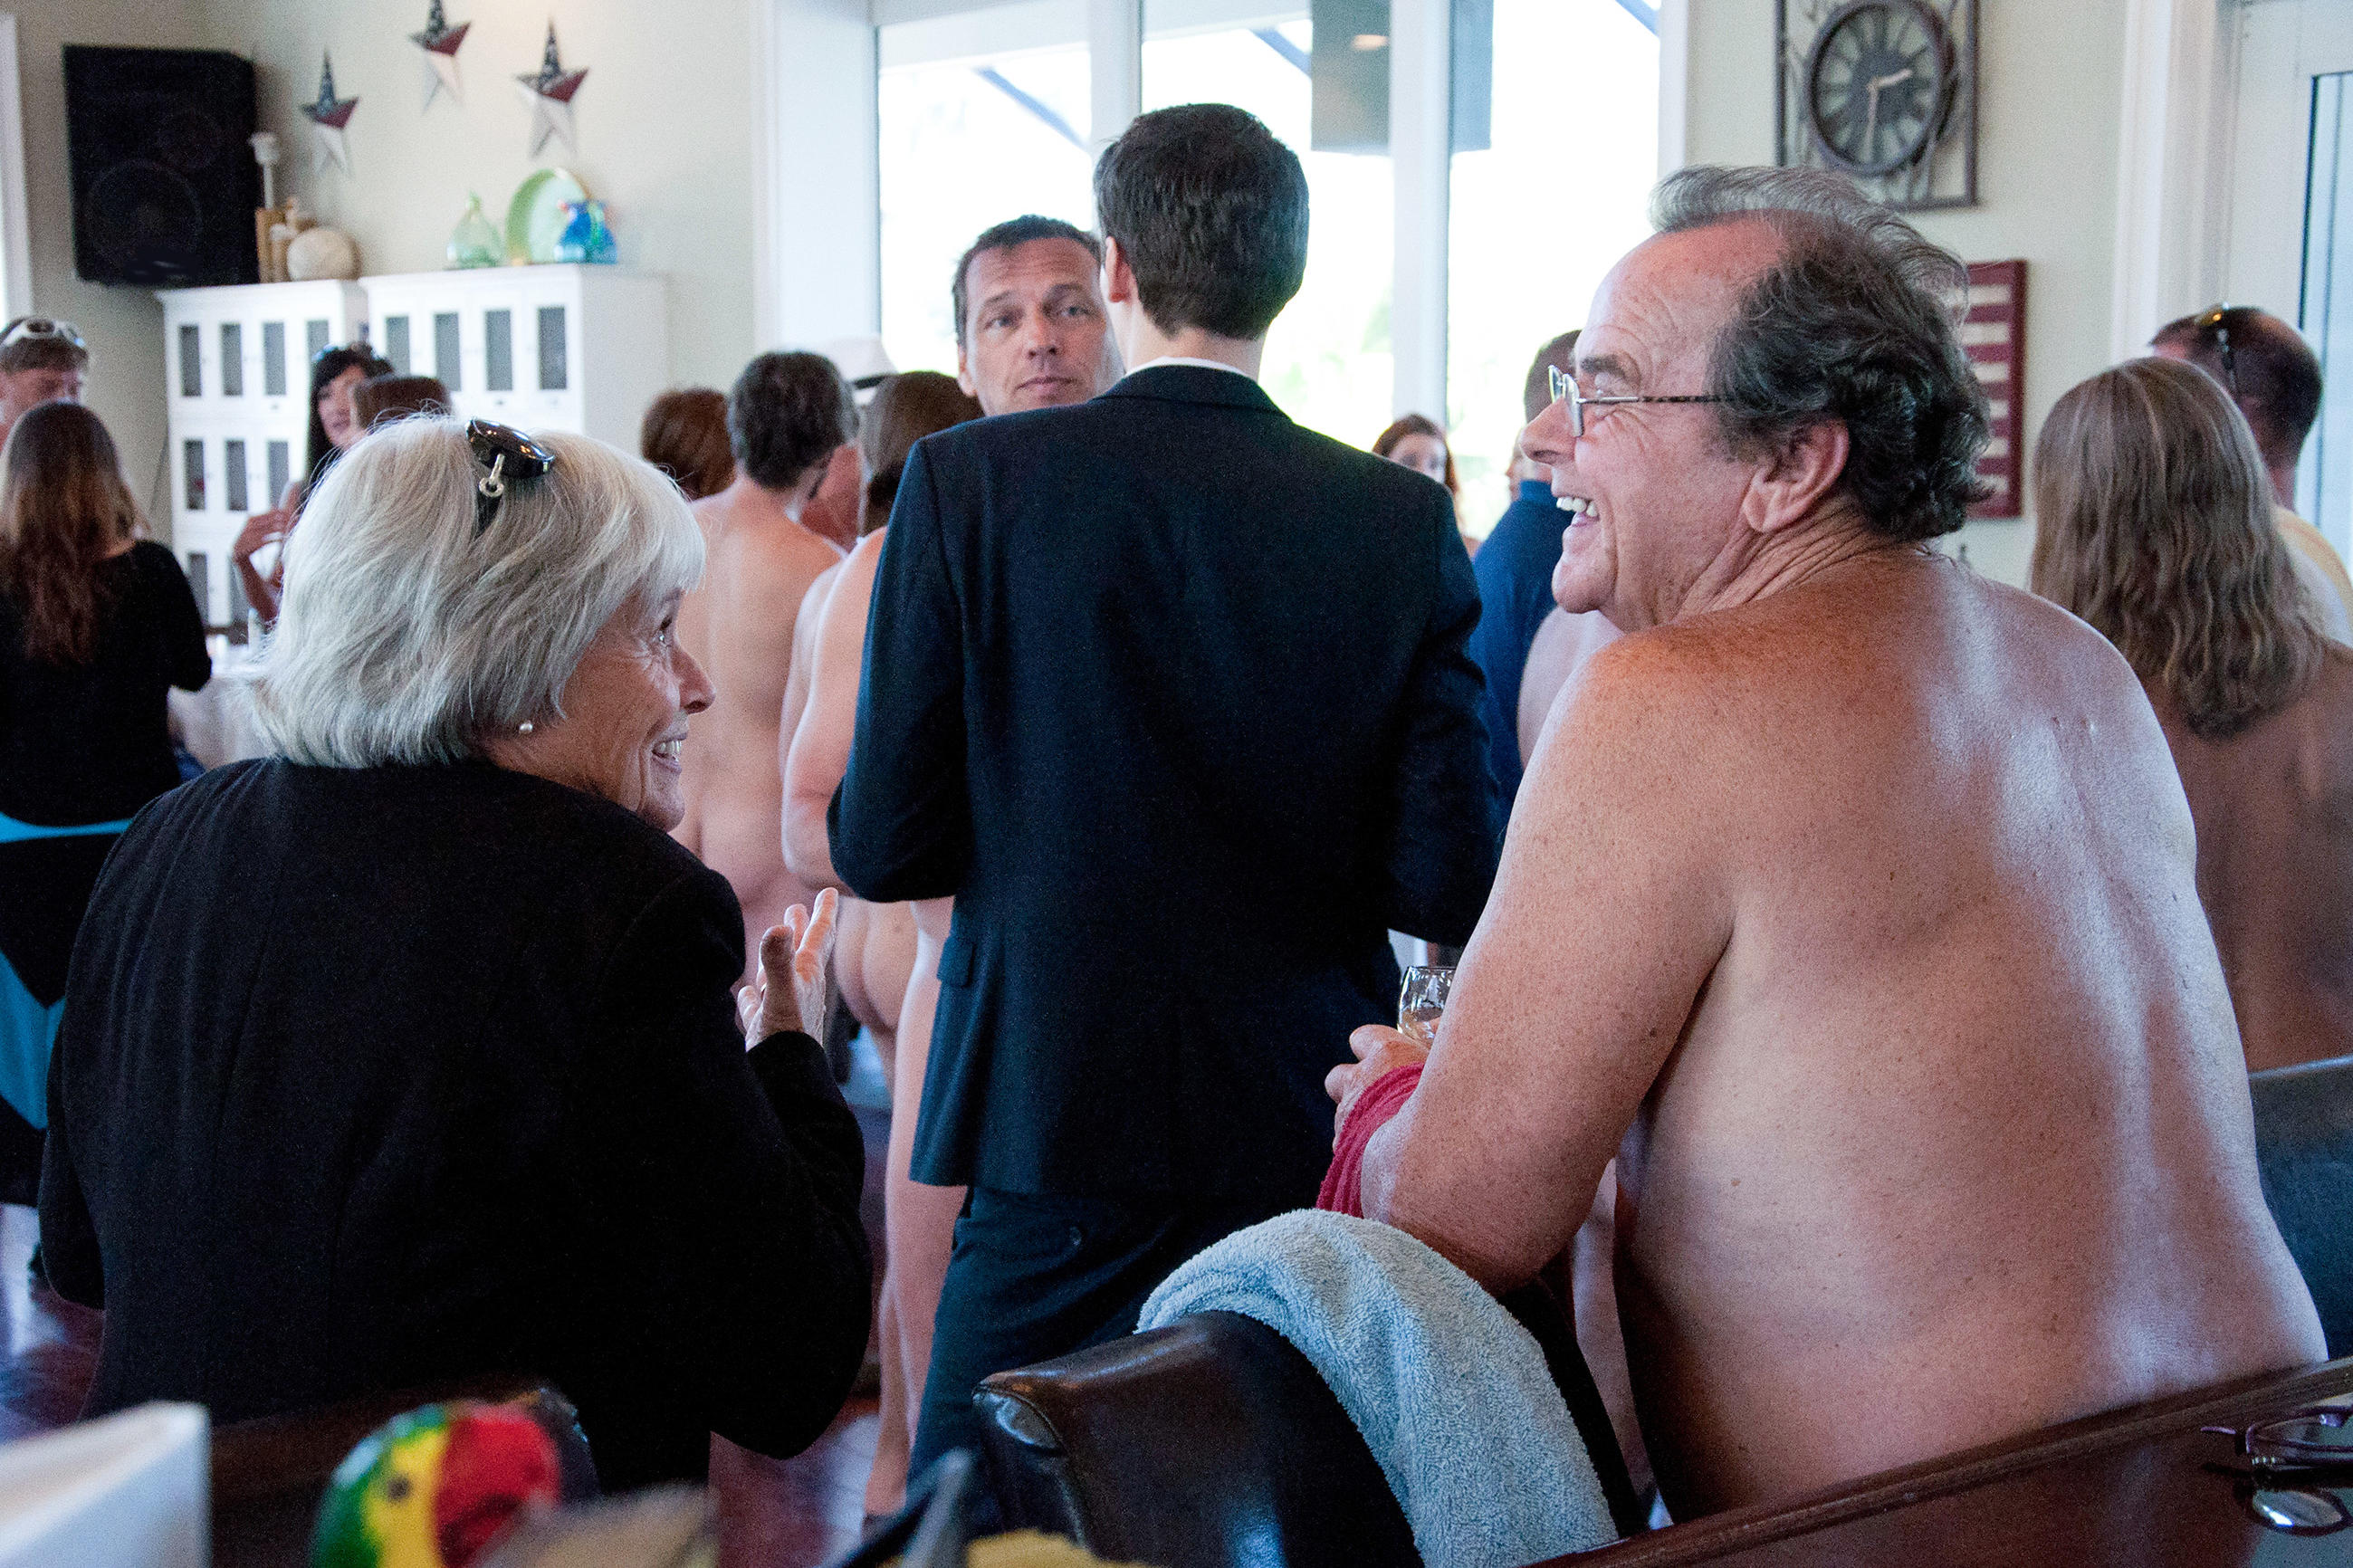 Nudists and textiles chat at the cocktail mixer.